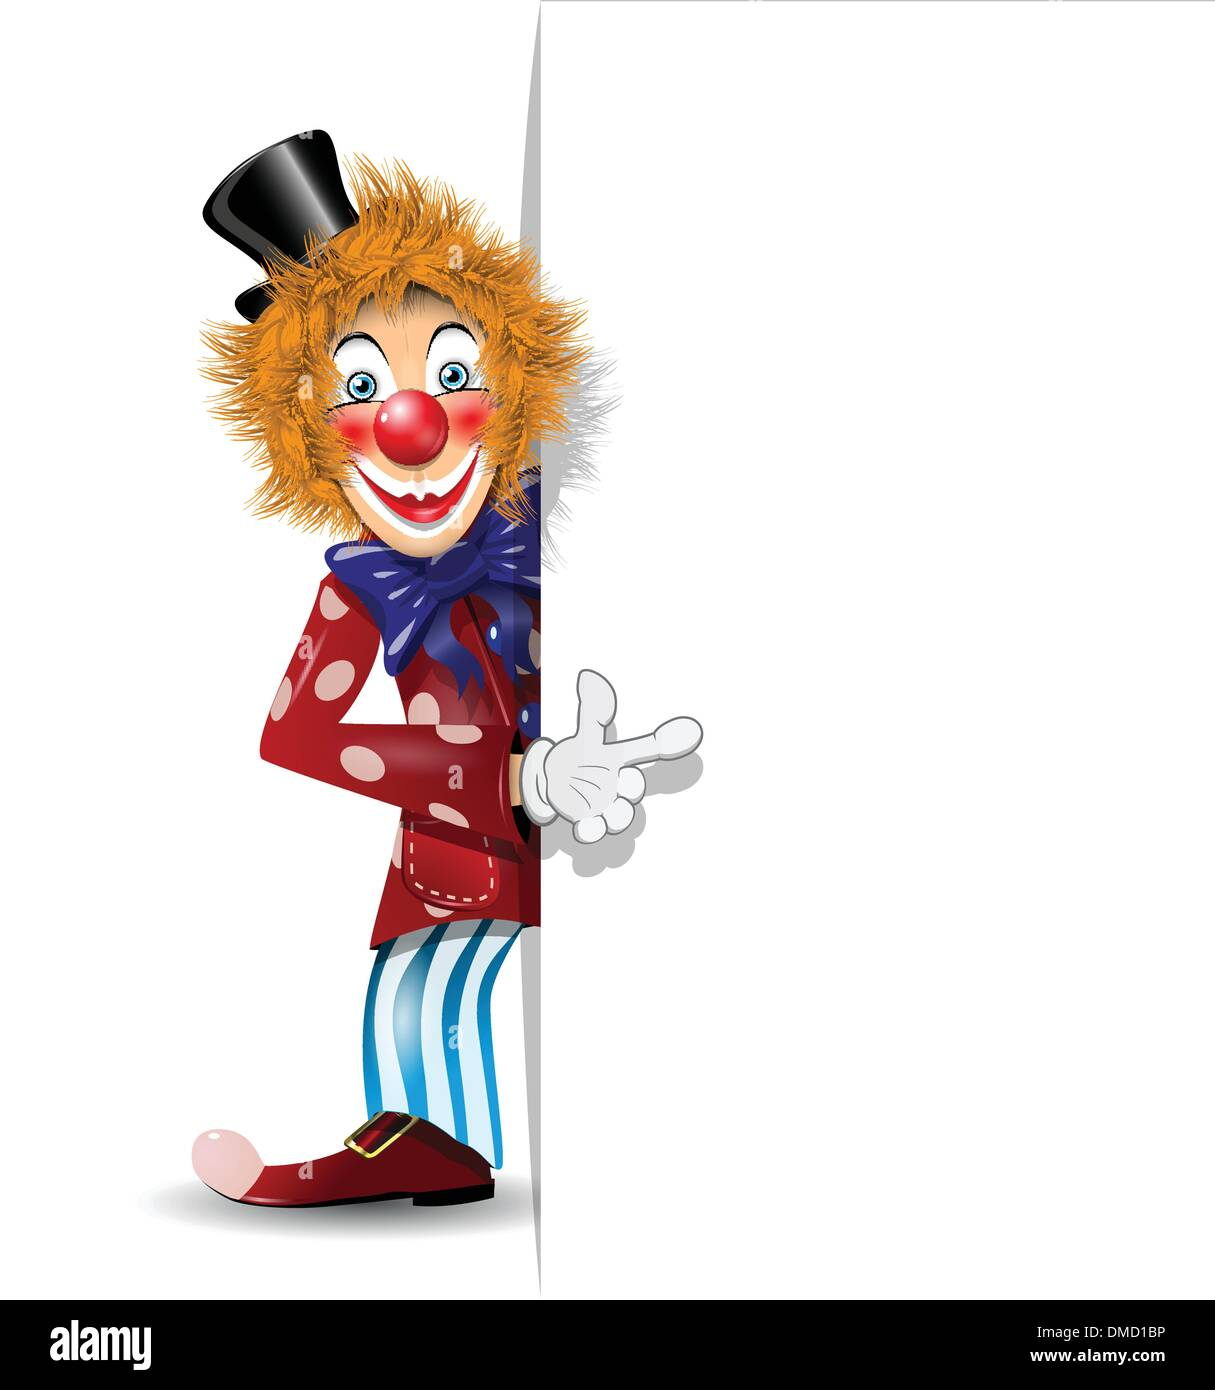 cheerful clown and white background - Stock Image